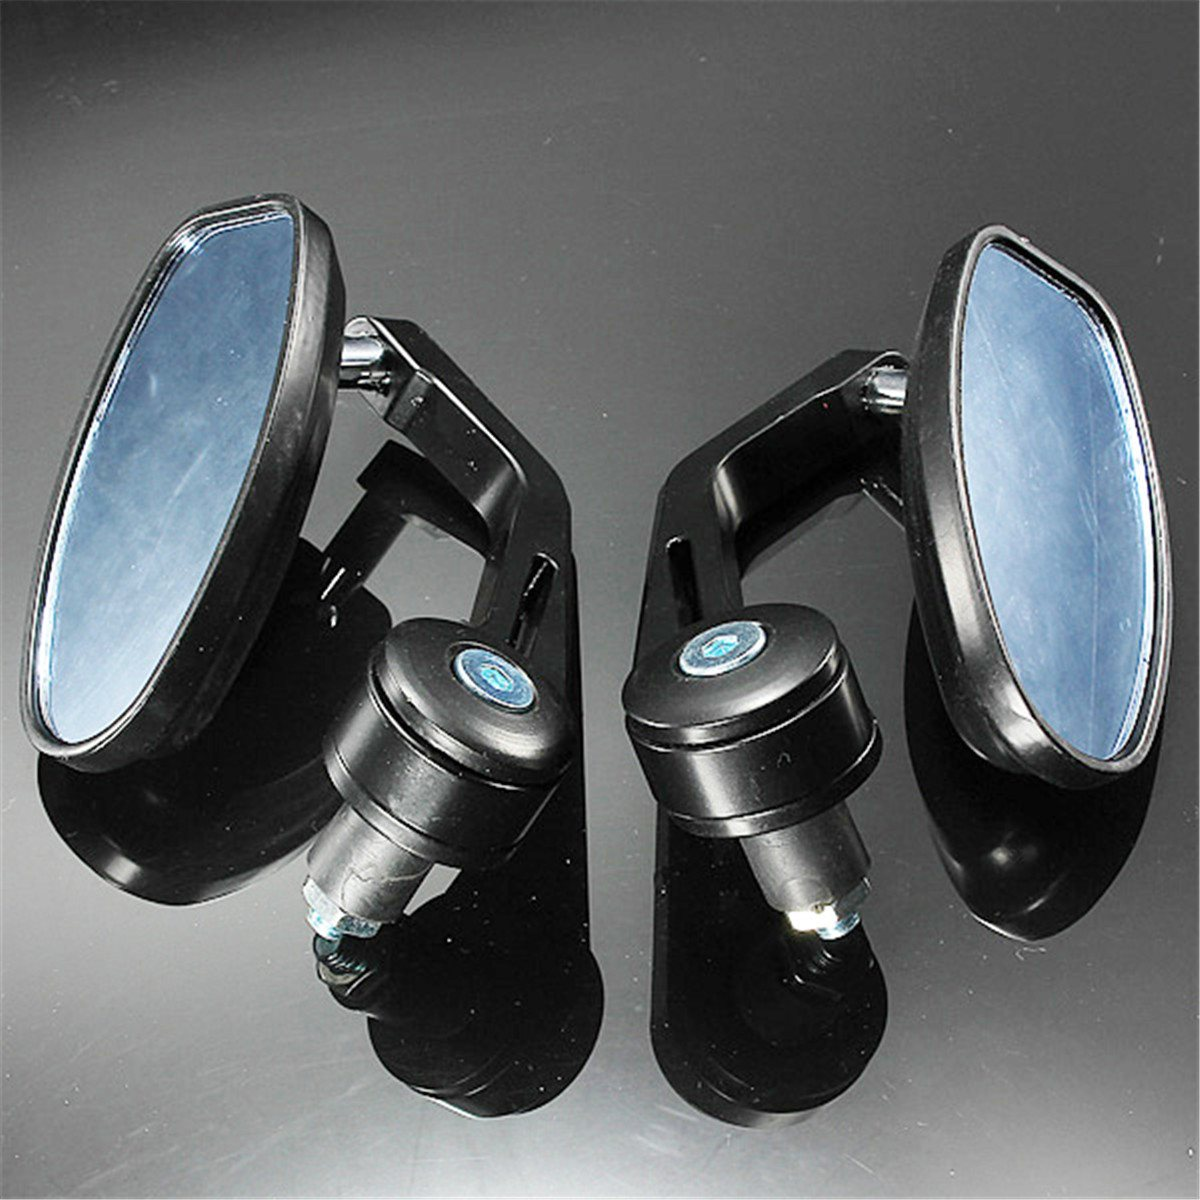 Universal 7/8 Inches Bar End Rear Mirrors Moto Motorcycle Motorbike Scooters Rearview Mirror Side View Mirrors Cafe Racer